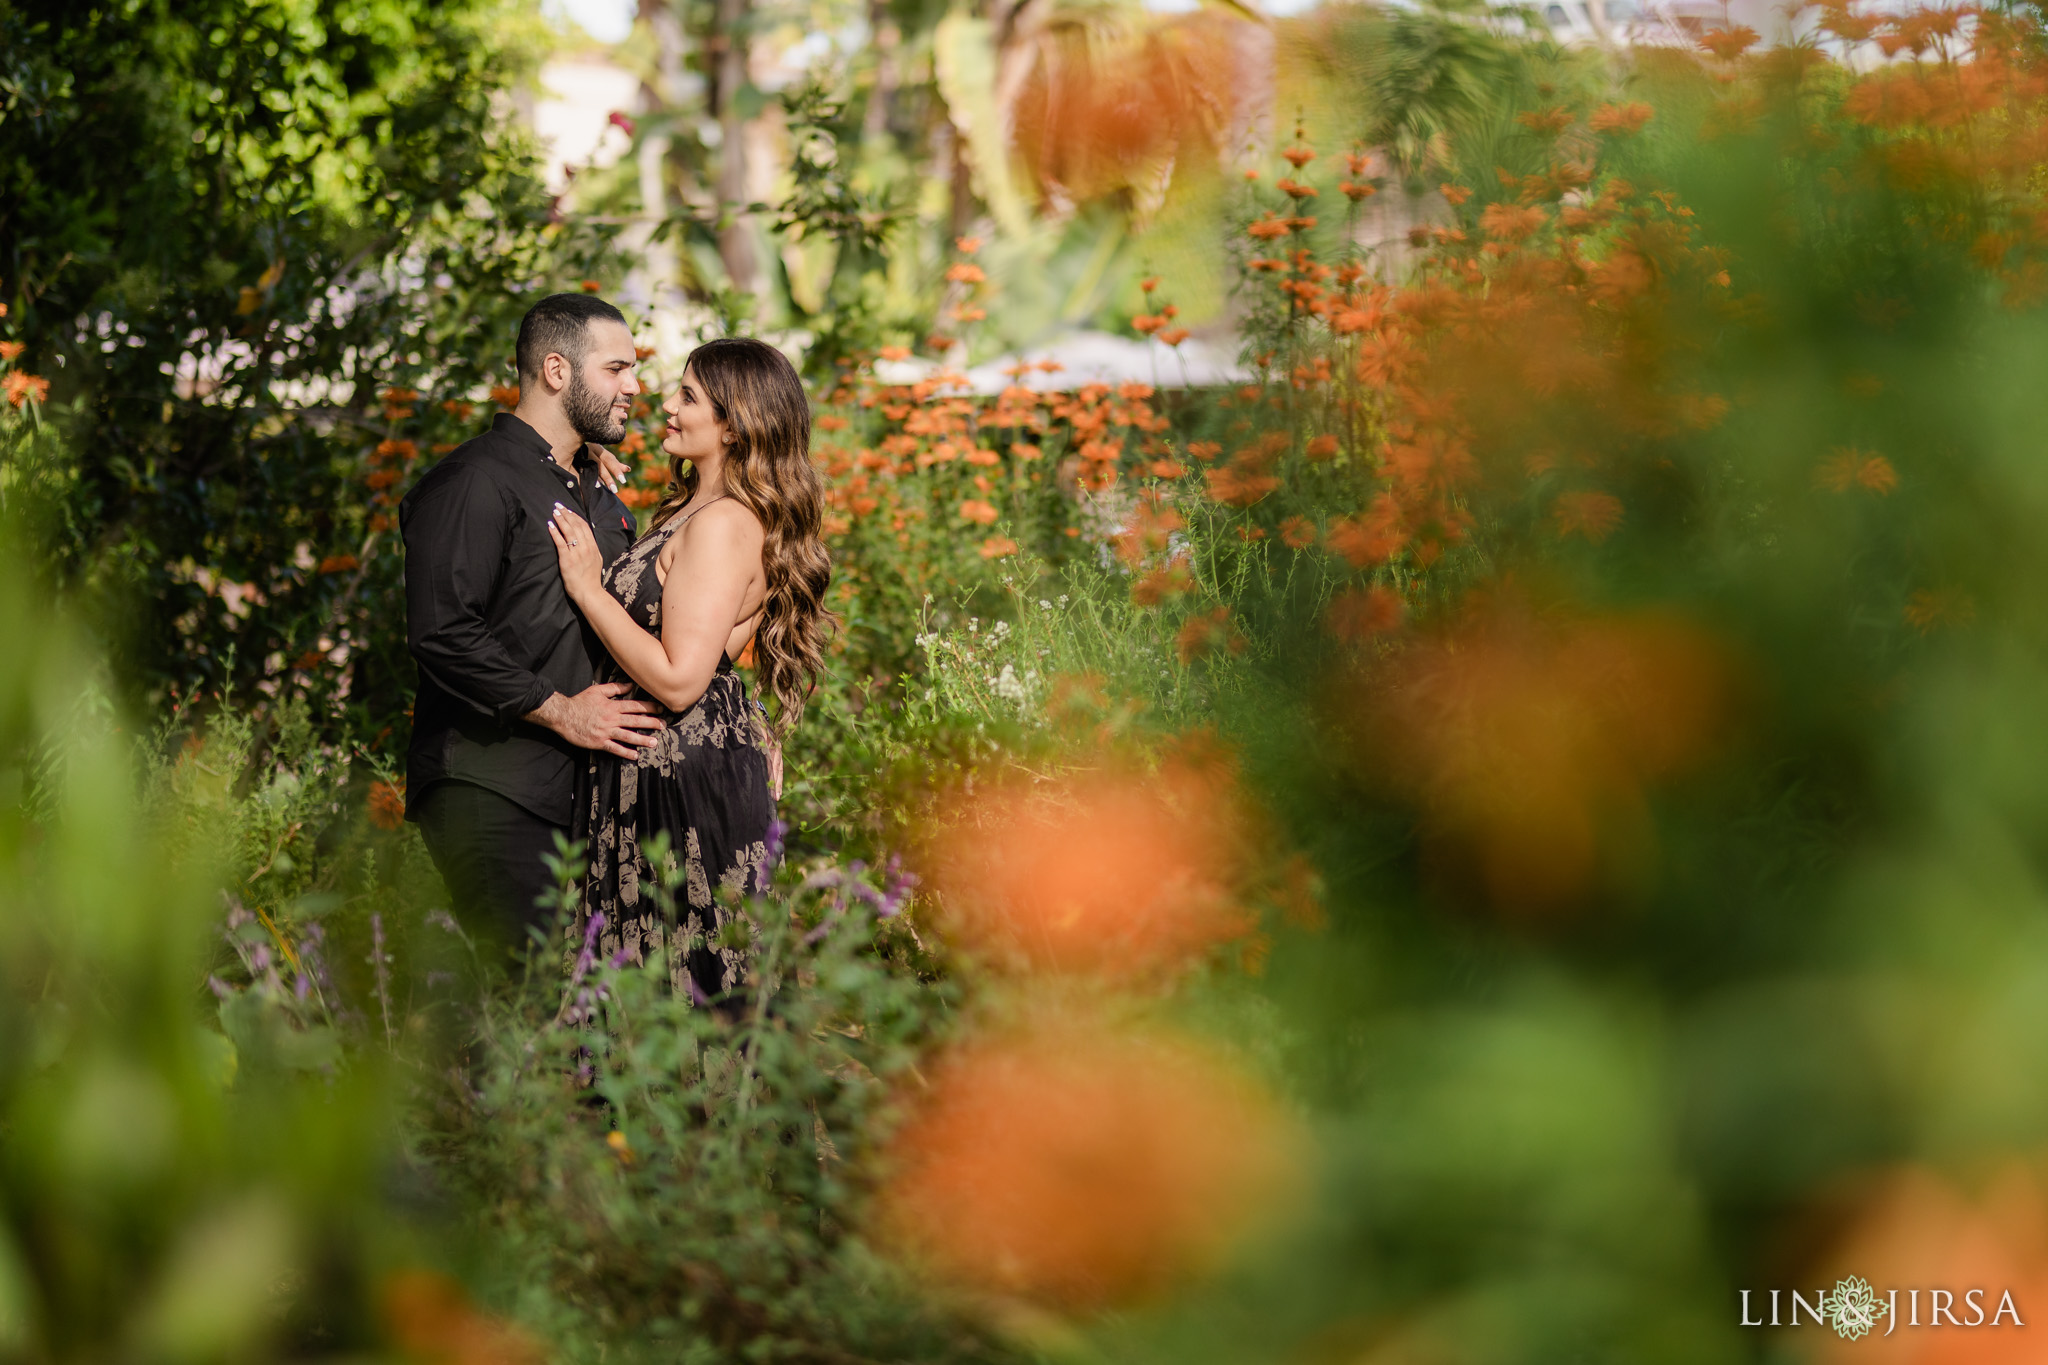 11 Mission San Juan Capistrano Orange County Engagement Photography